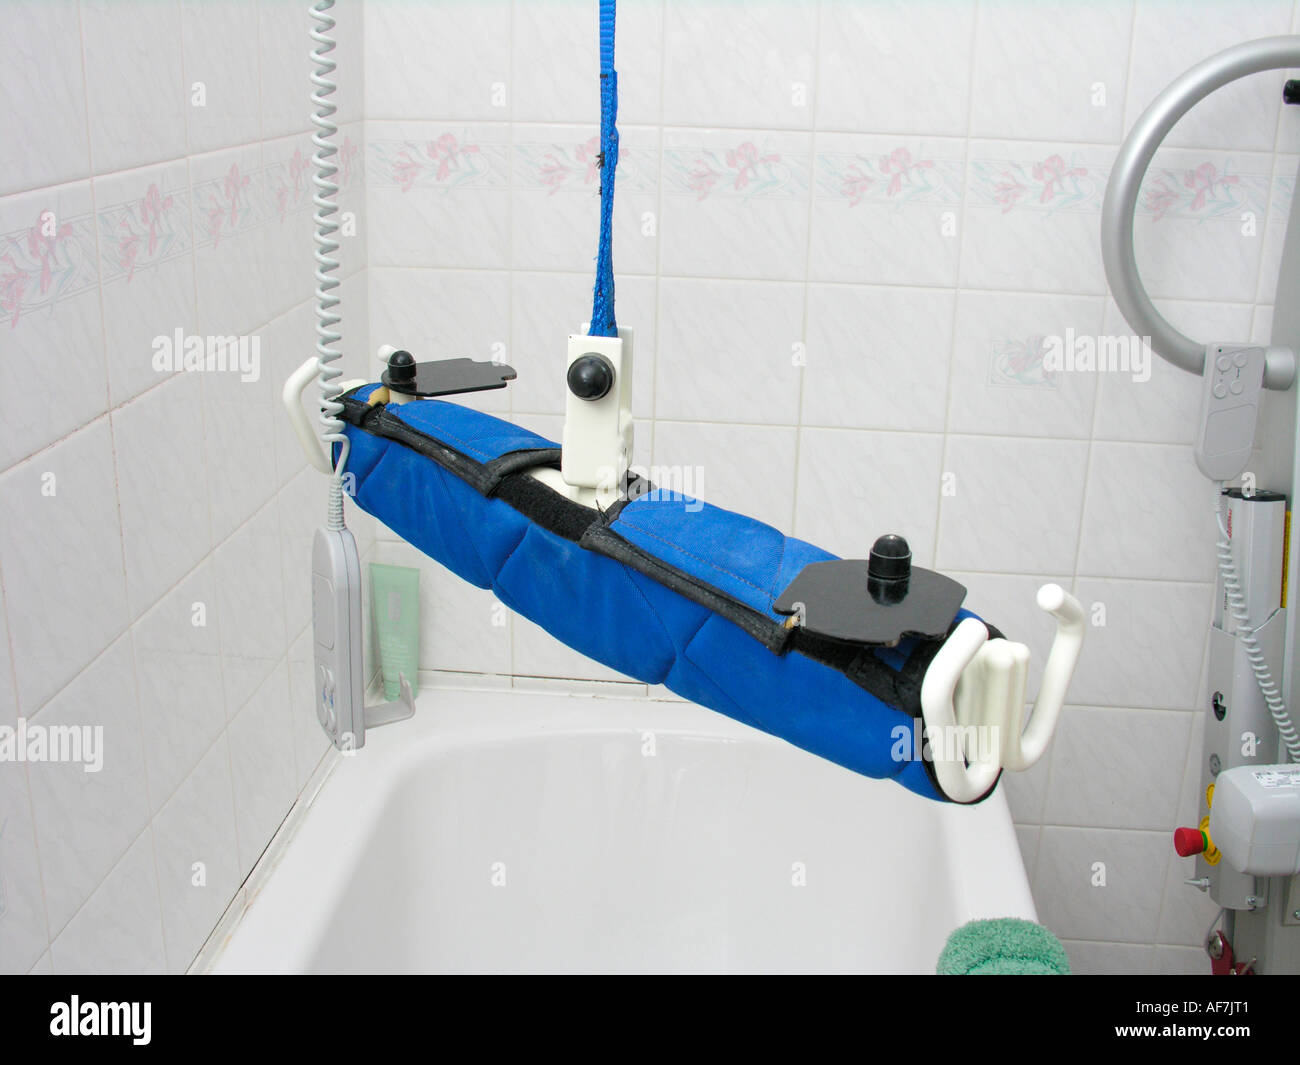 Windsor Ceiling Hoist Disability Equipment In The Bathroom For A Patient Or Disabled  Person